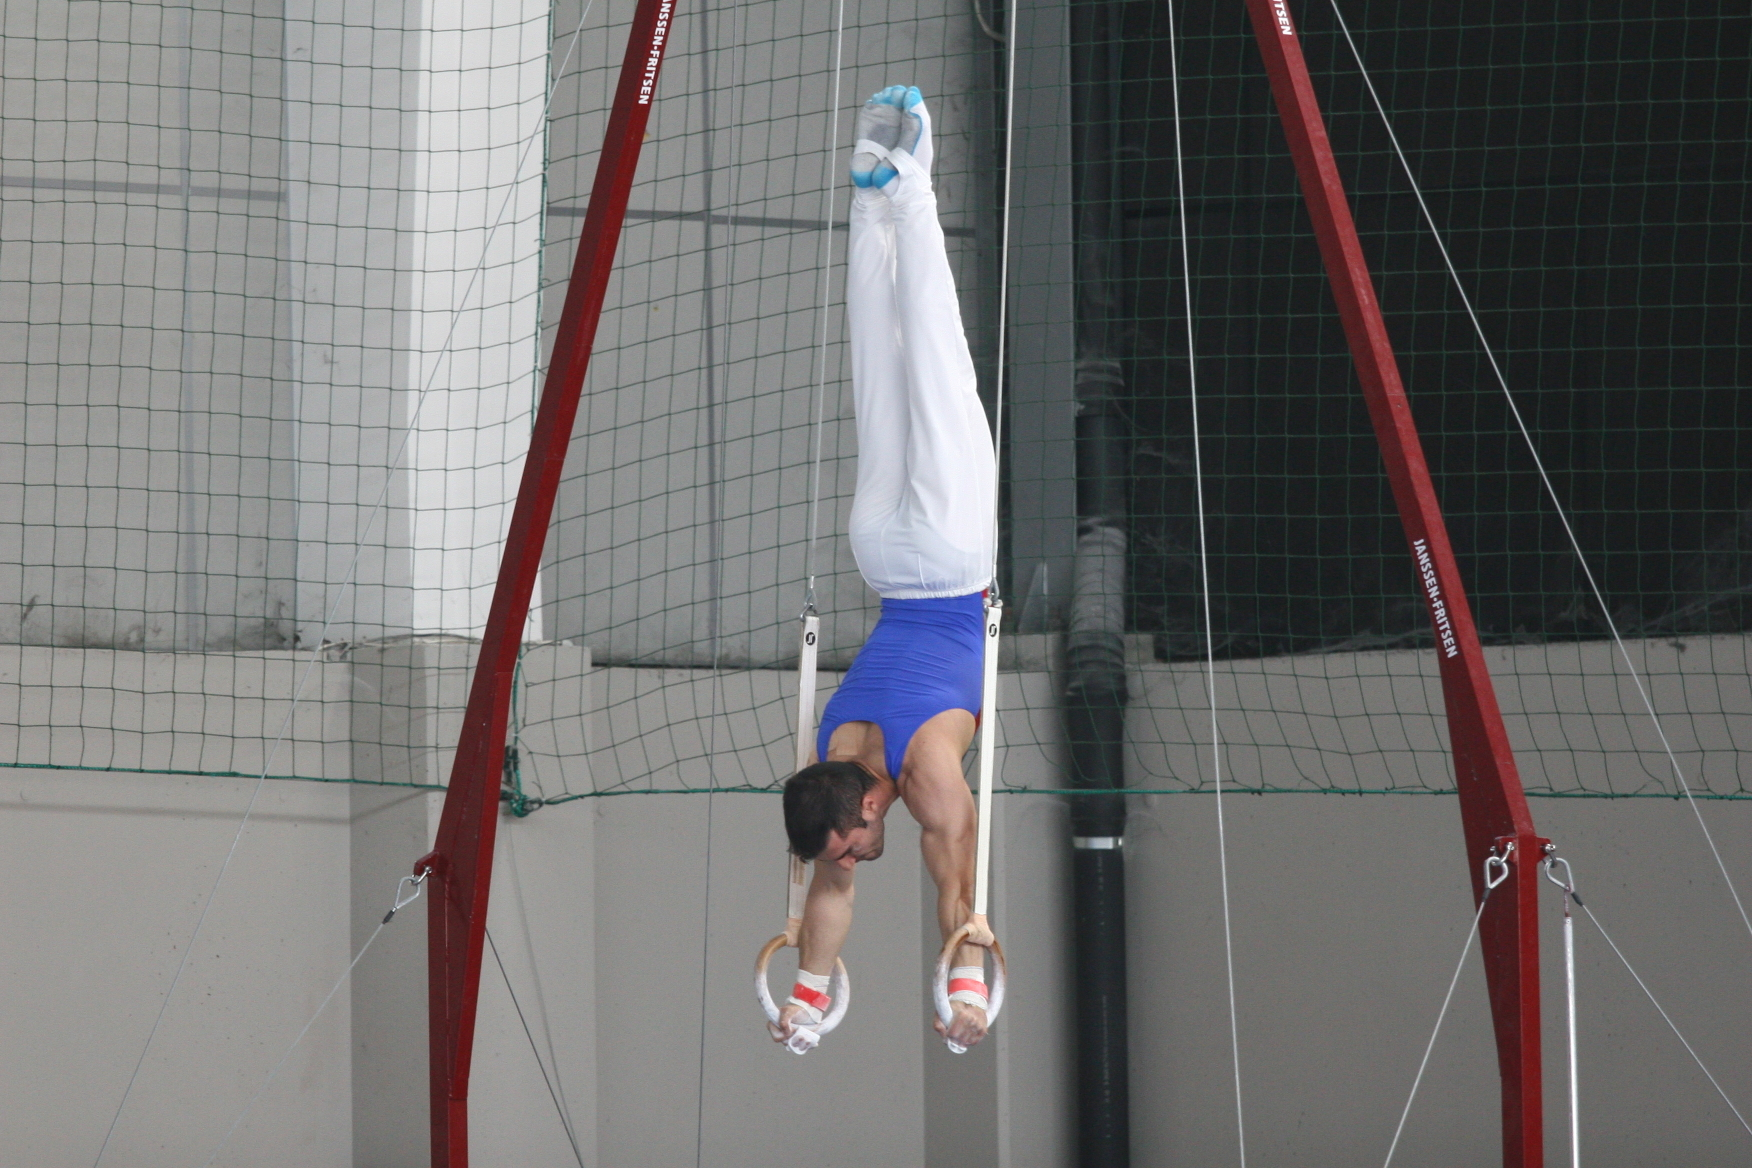 Gymnastics - Handstand on Rings at the 2016 Nationals